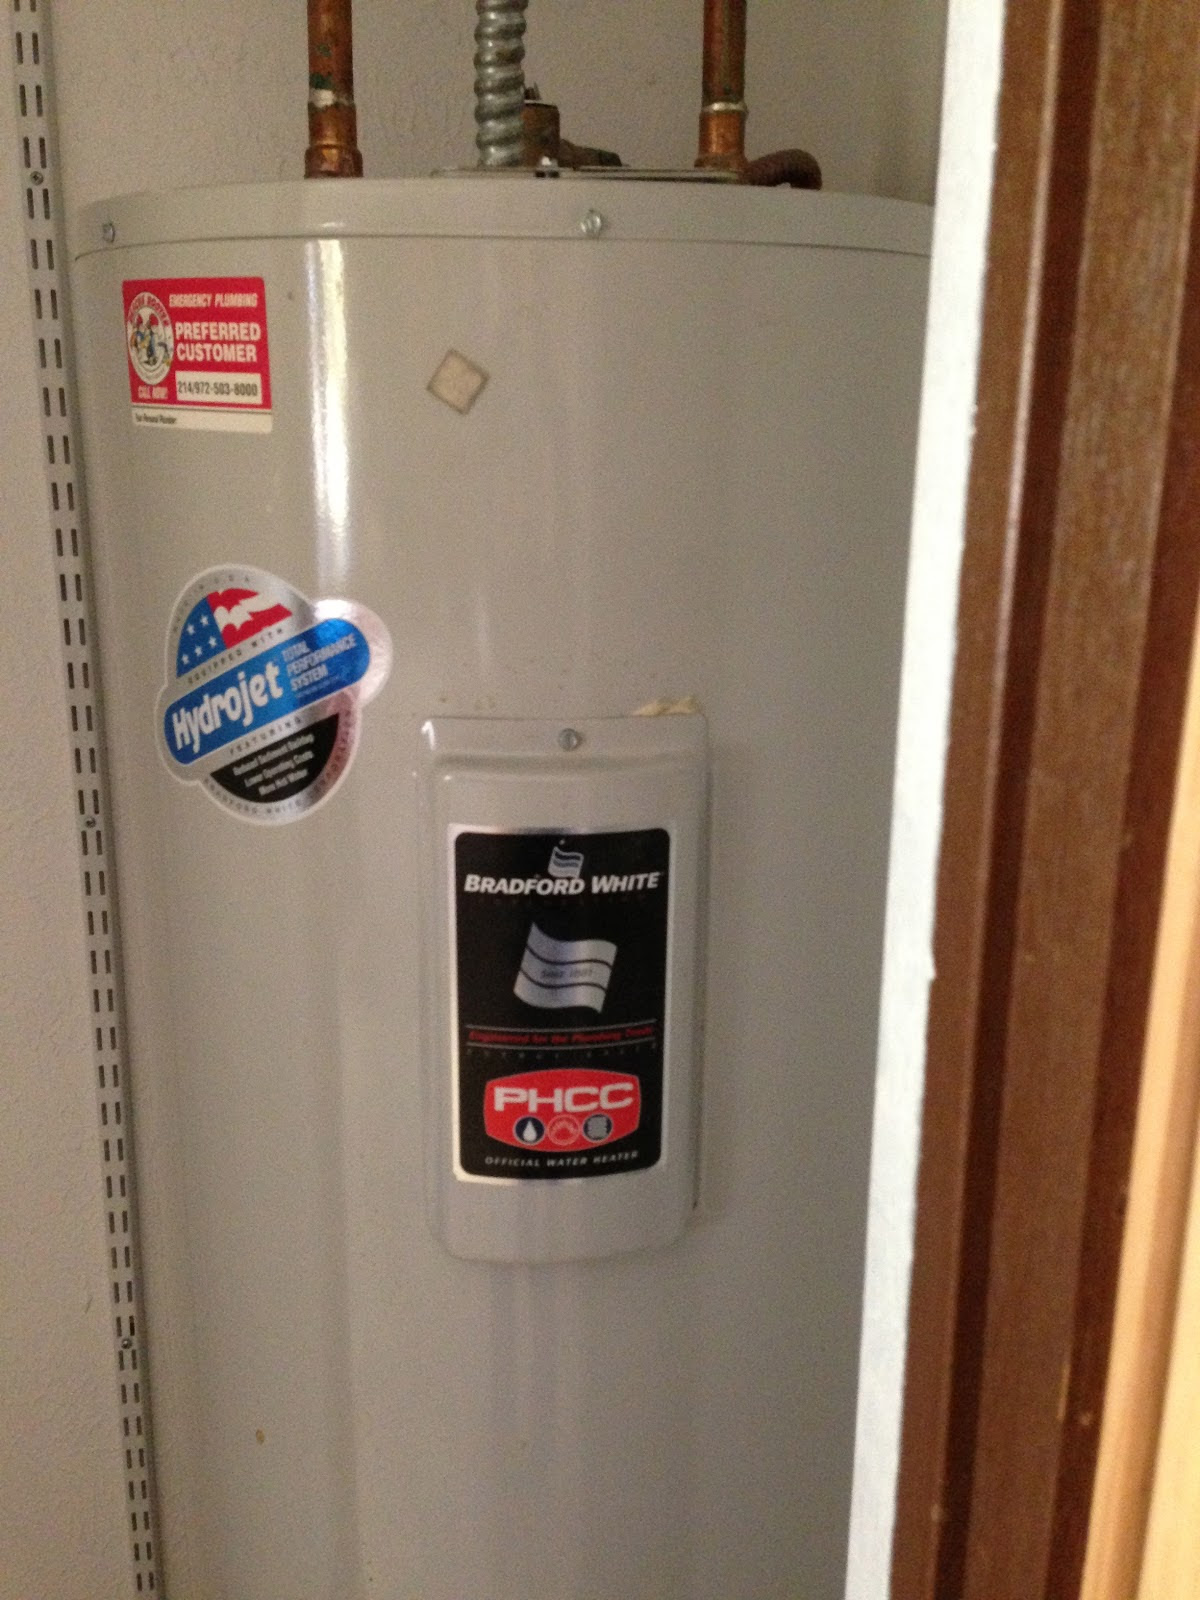 Bradford White Water Heater Reset Button Location : bradford, white, water, heater, reset, button, location, Bradford, White, Water, Heater, Reset, Button